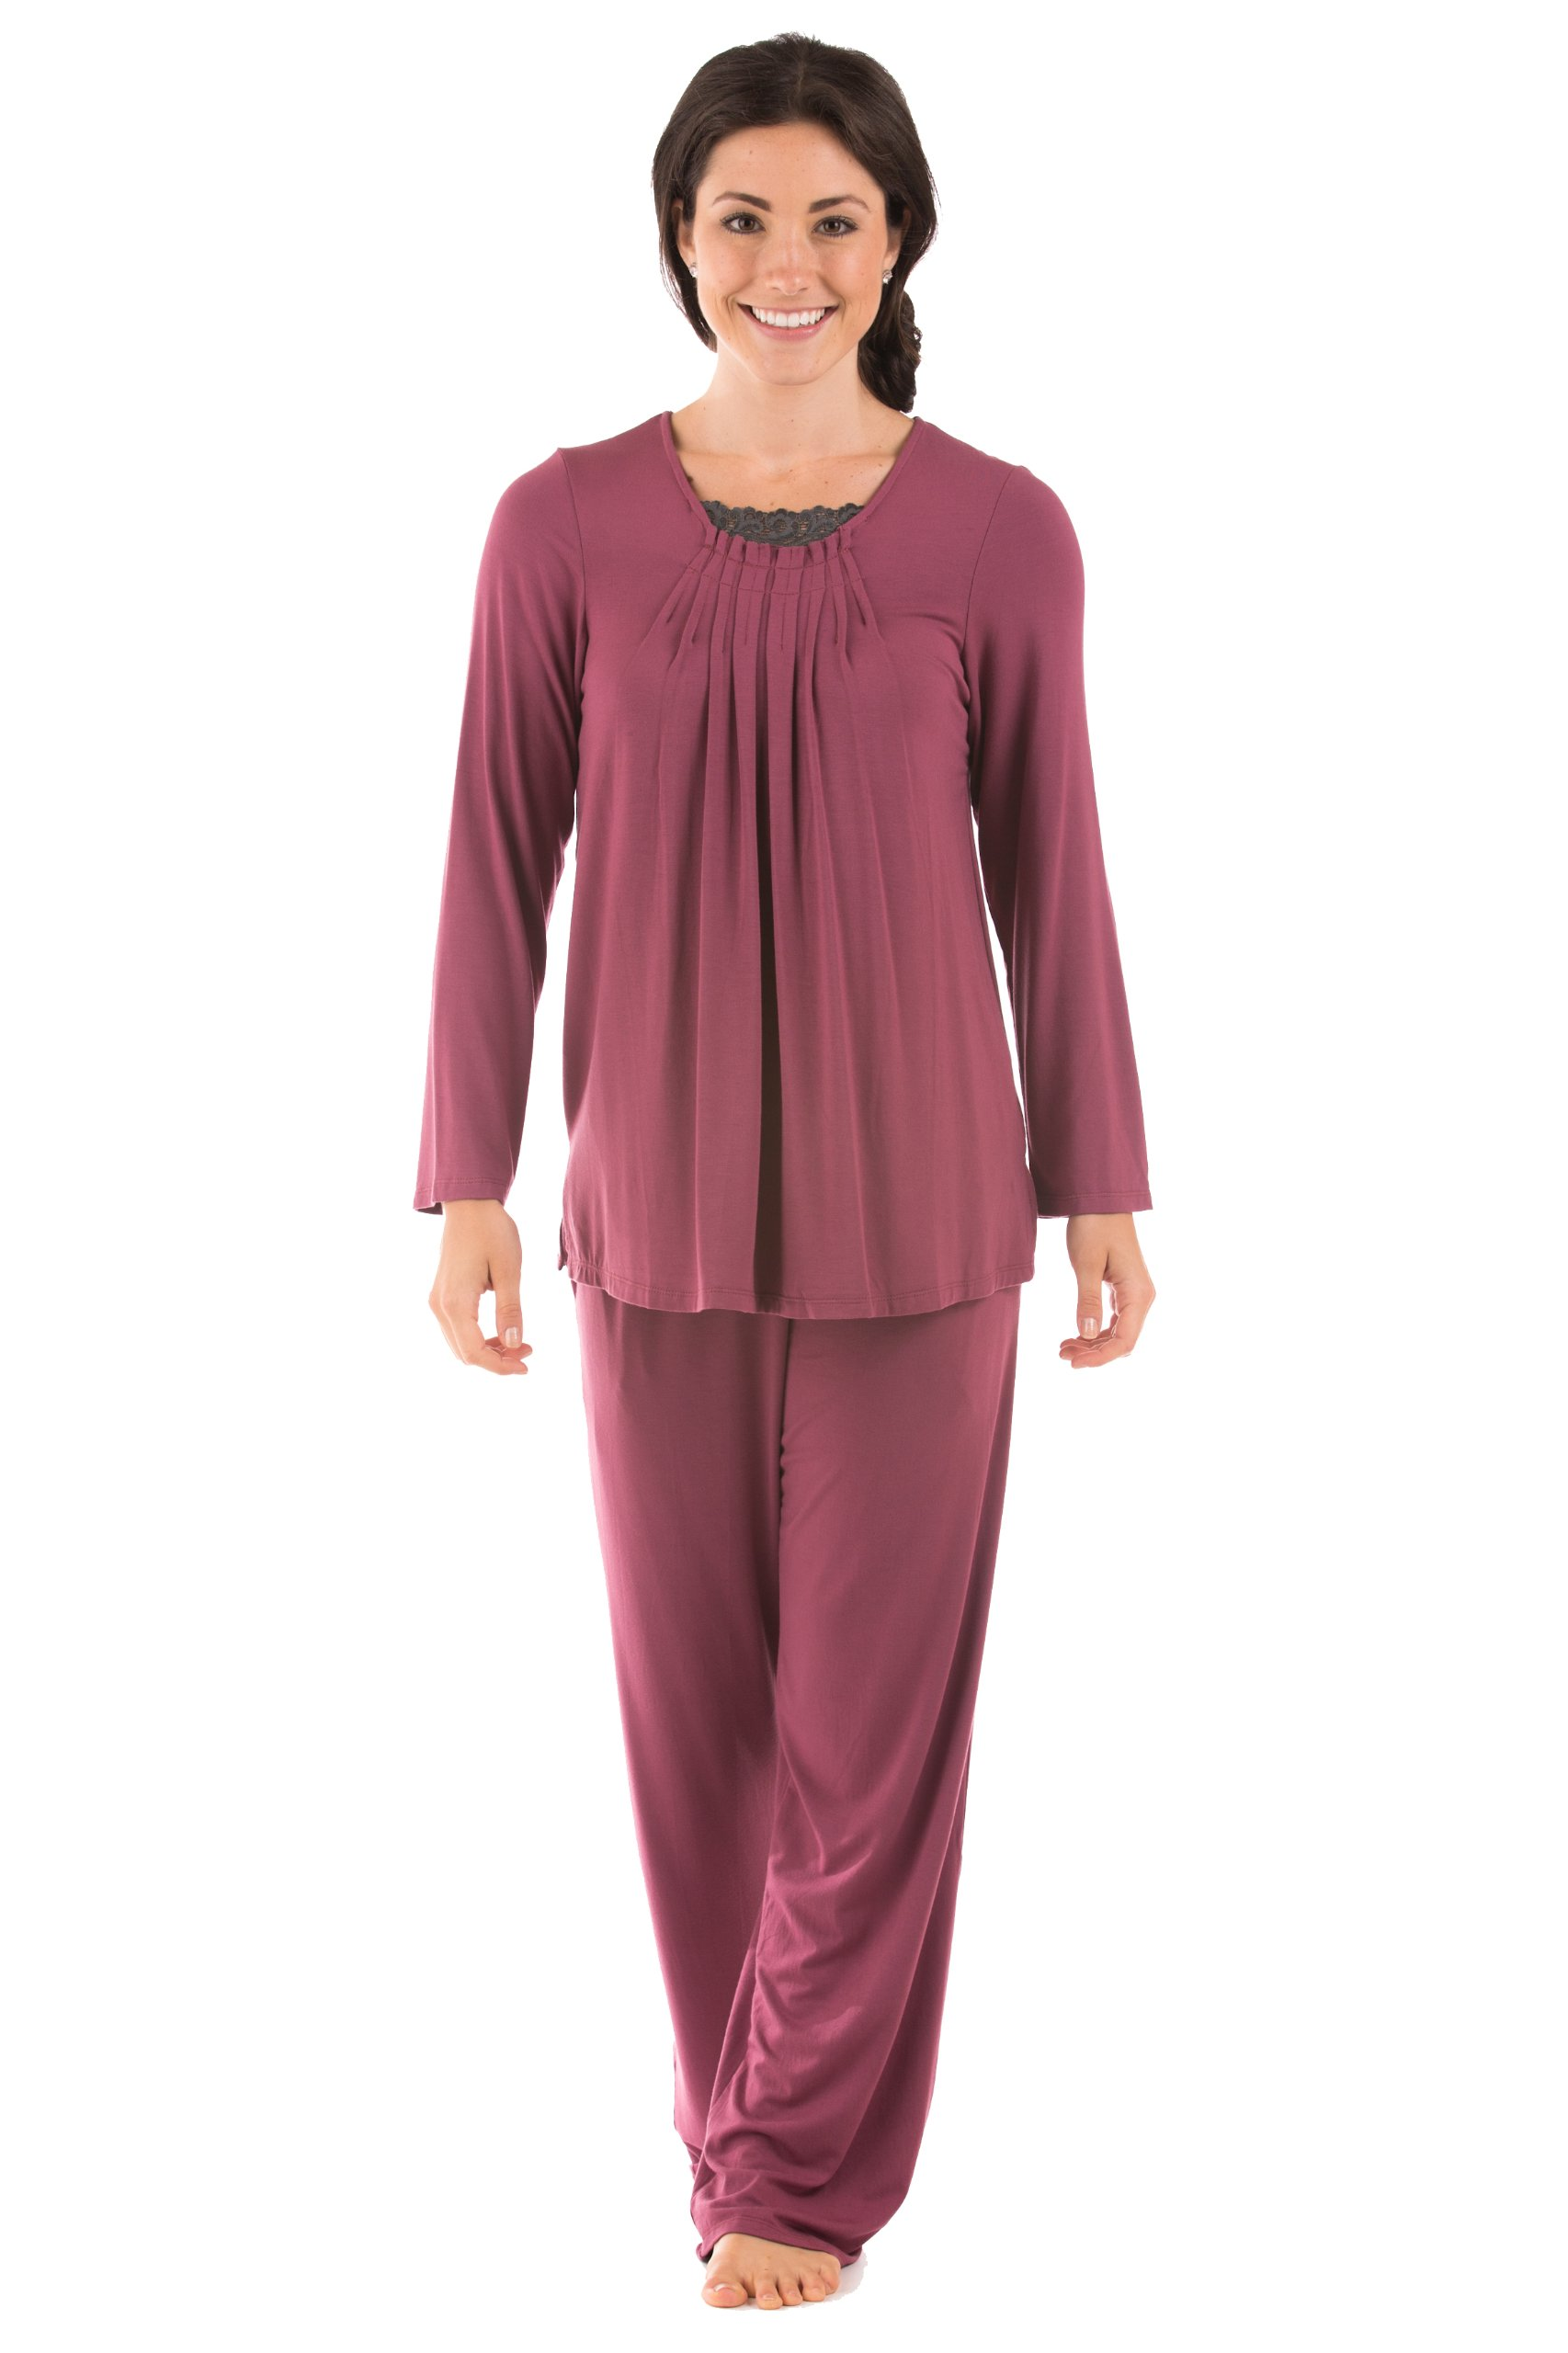 TexereSilk Texere Women's Long Sleeve Pajama Set (Garnet, X-Small/Petite) Unique Gifts for Anniversary WB9993-GNT-XSP